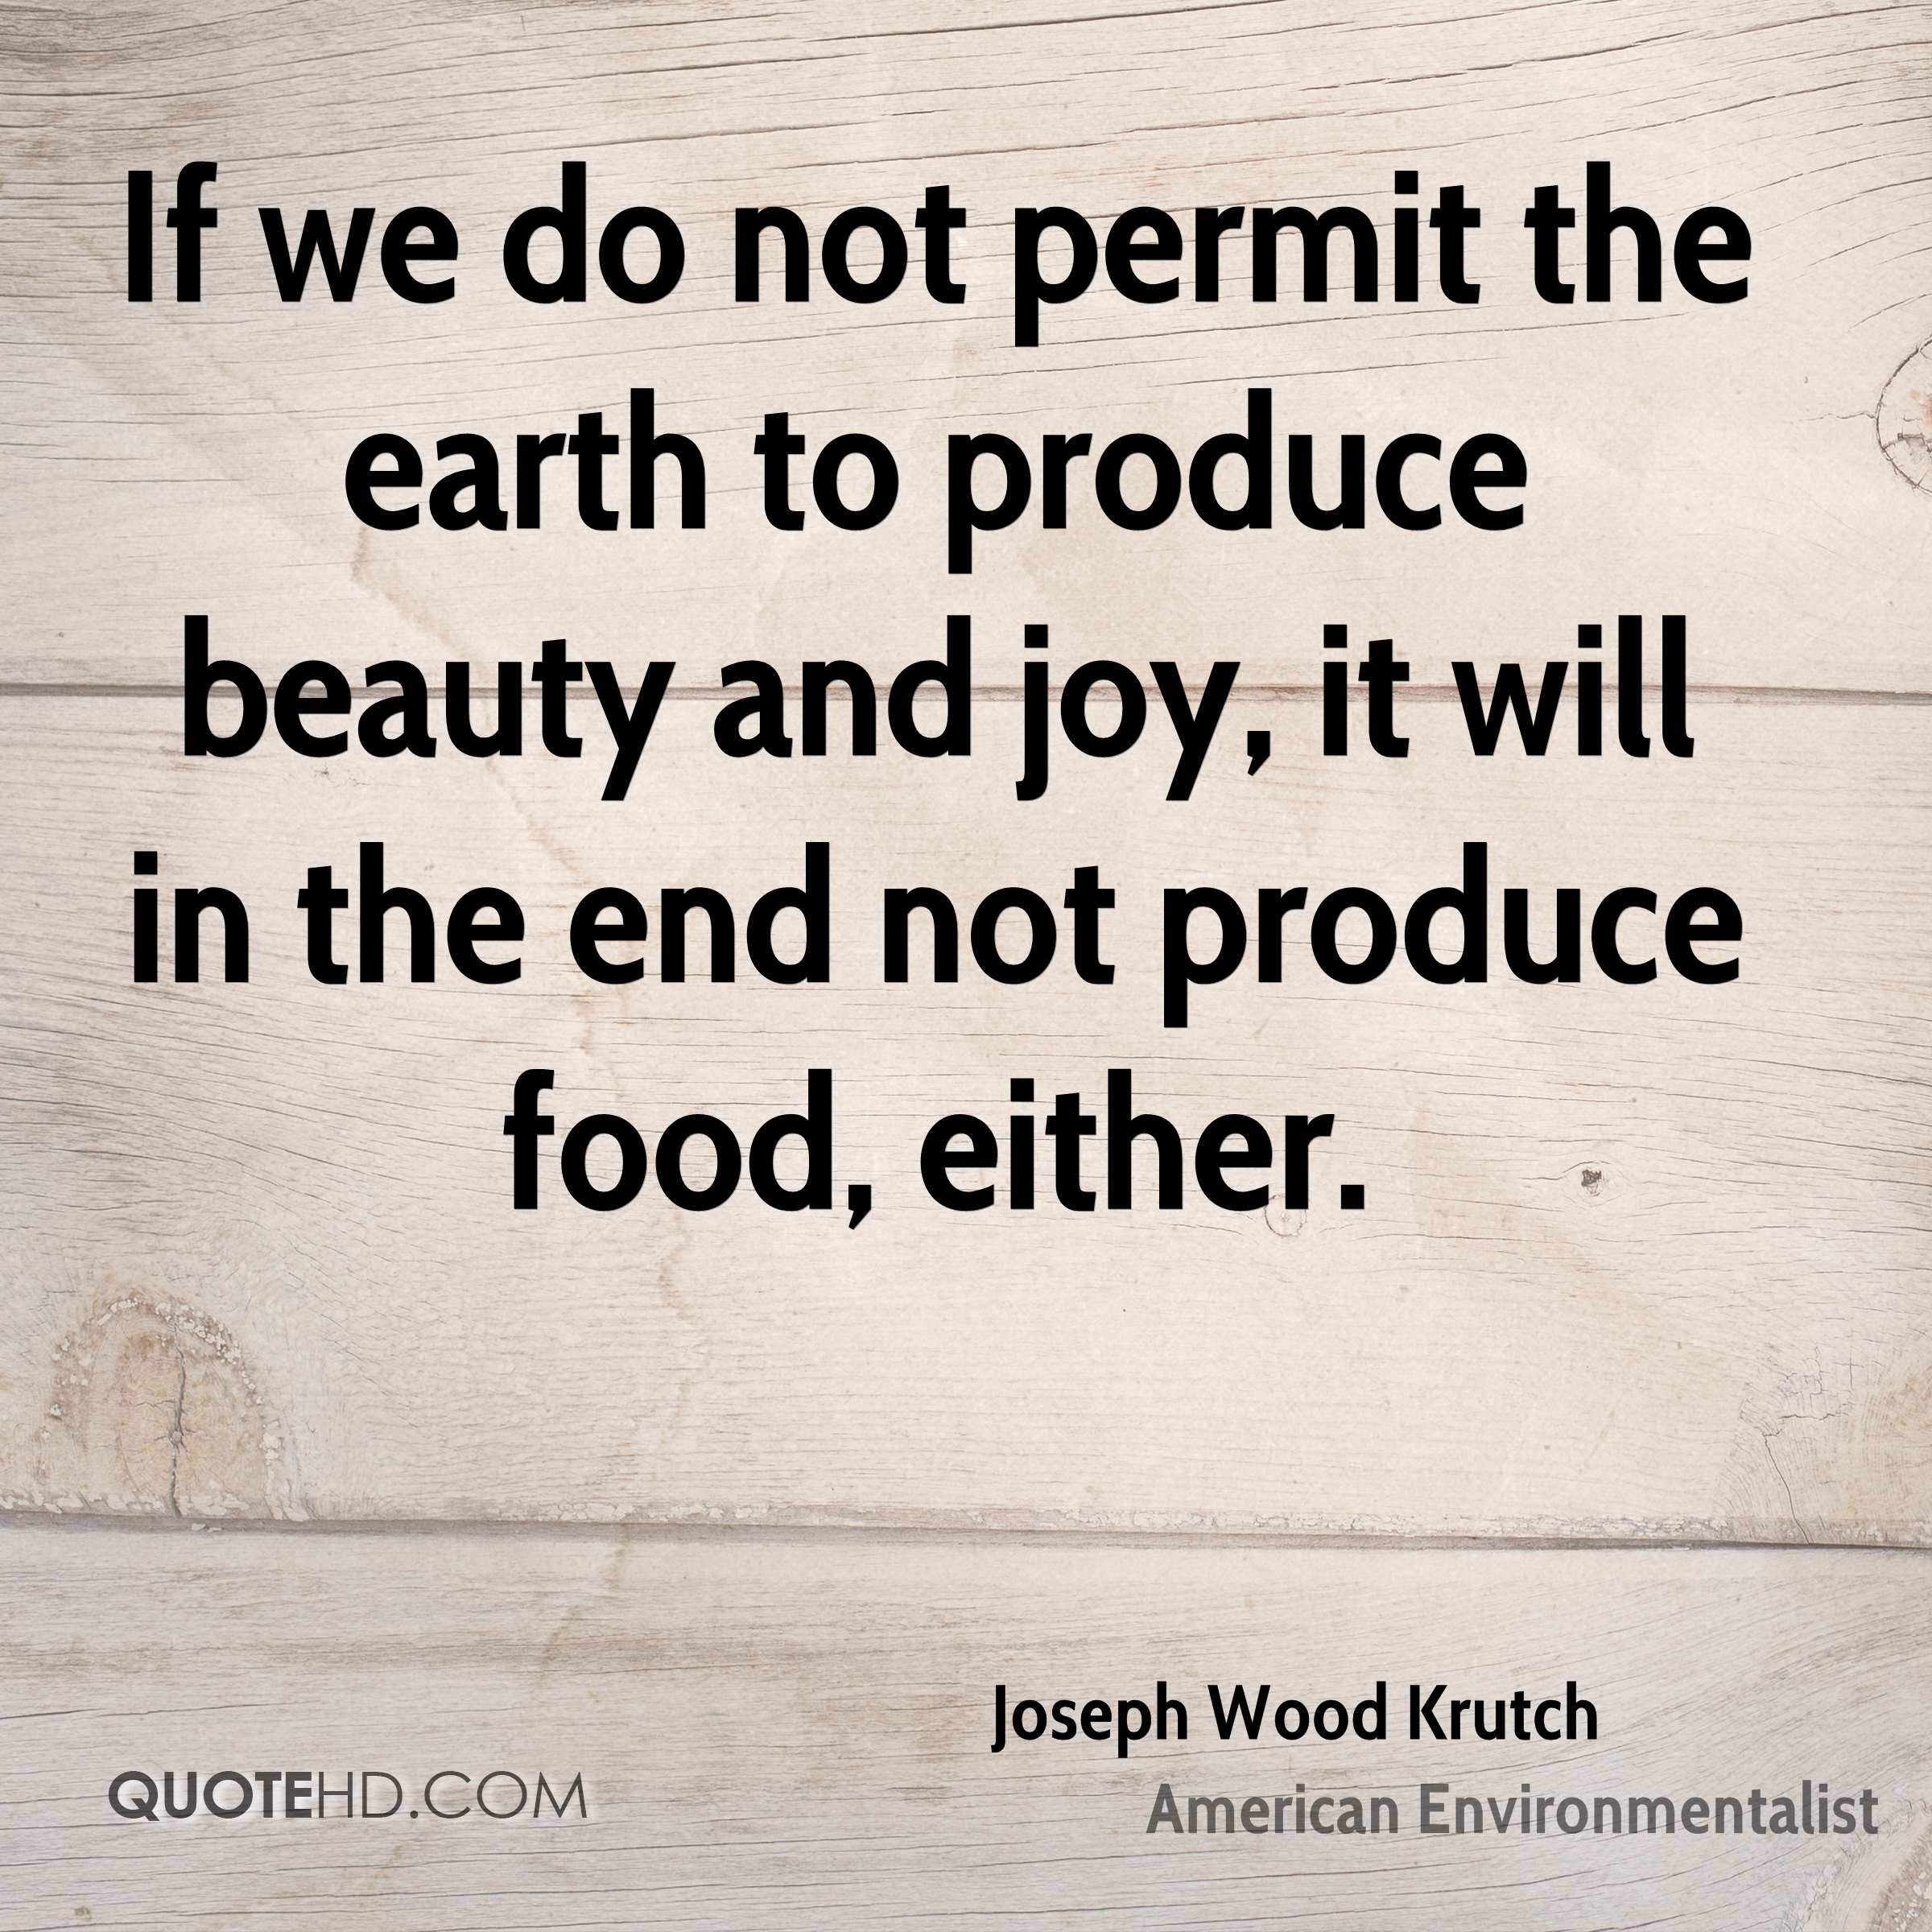 If we do not permit the earth to produce beauty and joy, it will in the end not produce food, either.